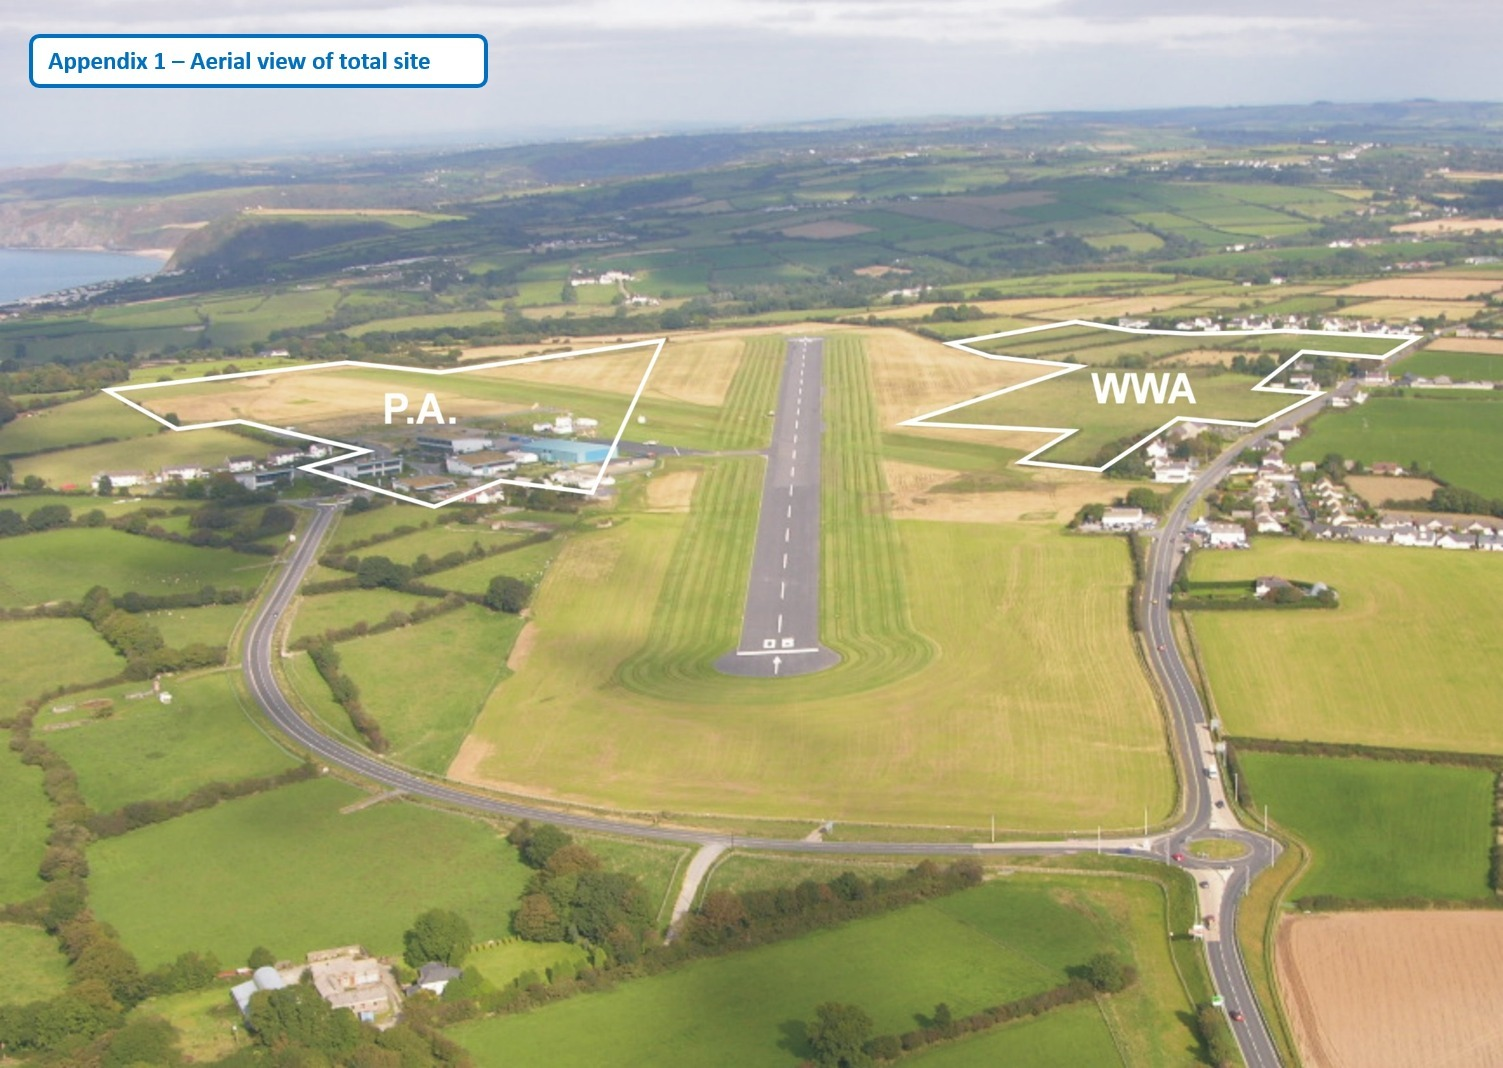 An aerial view of the development site at West Wales Airport taken from its recent planning application.